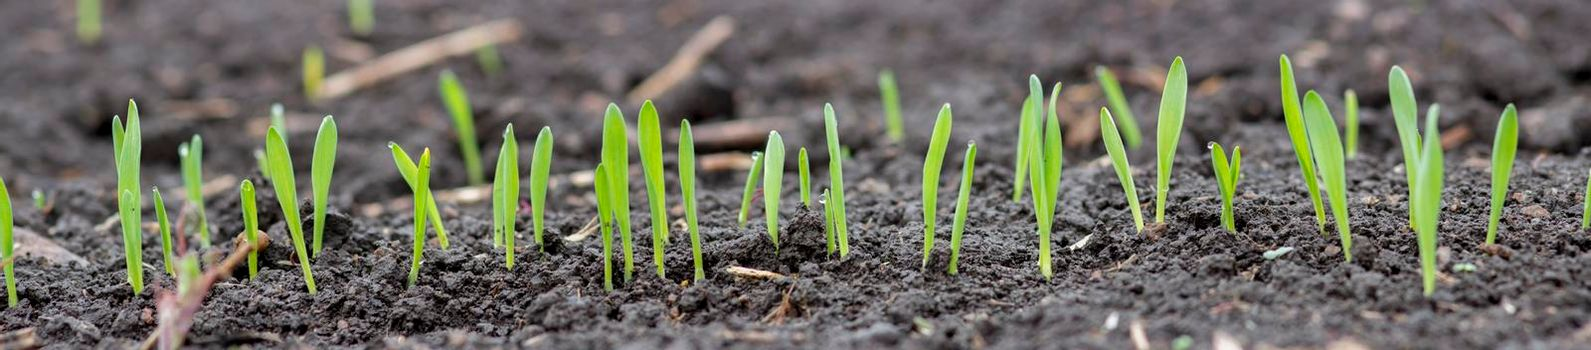 Panorama of young sprouts of barley or wheat. Green leaves of germinating grain from the soil in agriculture.